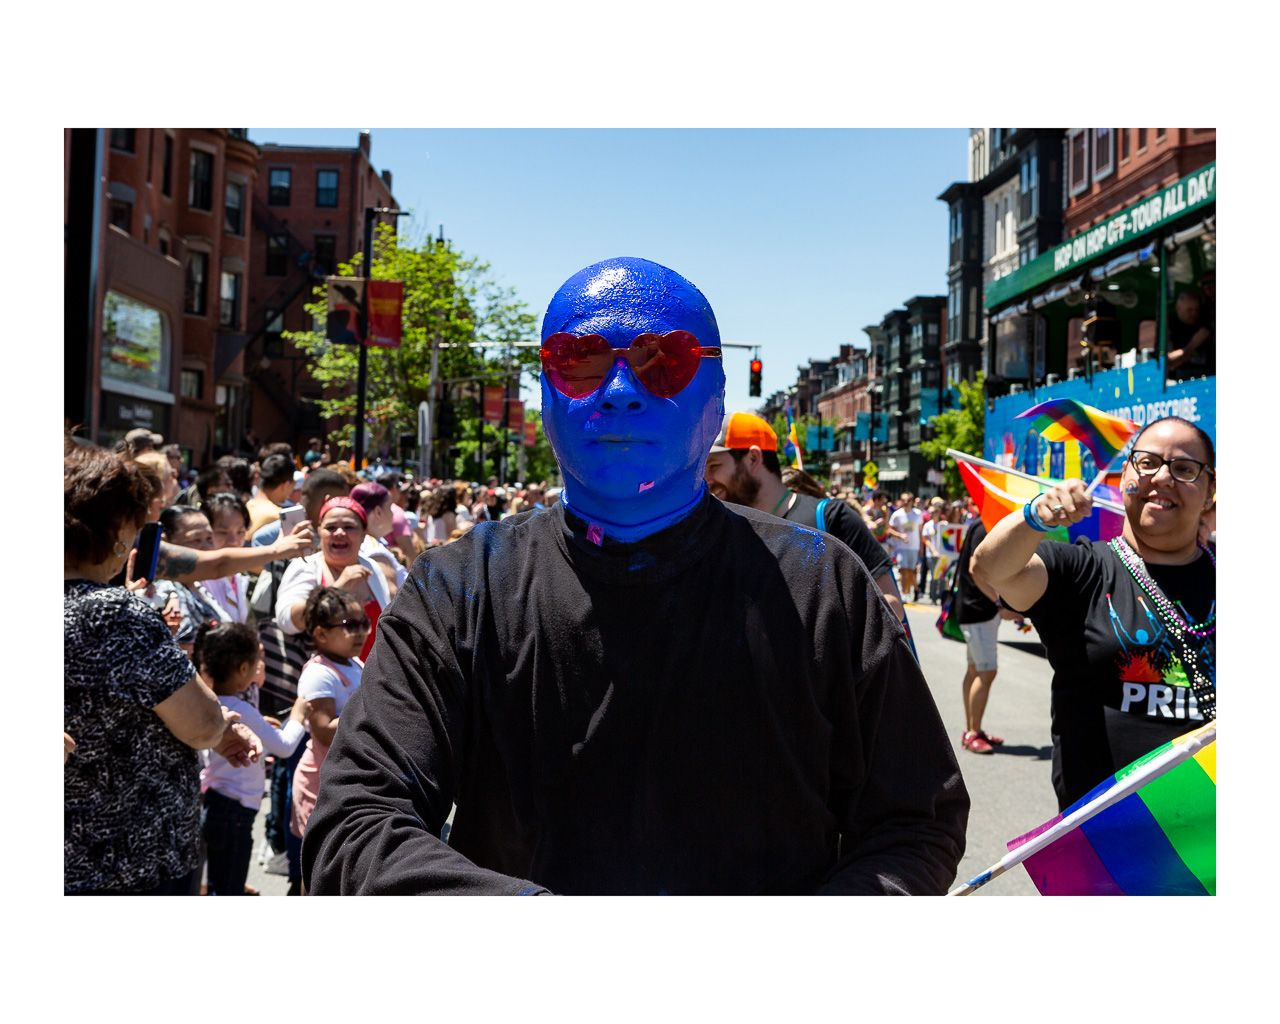 Boston Pride 2019 - wht border - Livebooks20190608 - 01.jpg